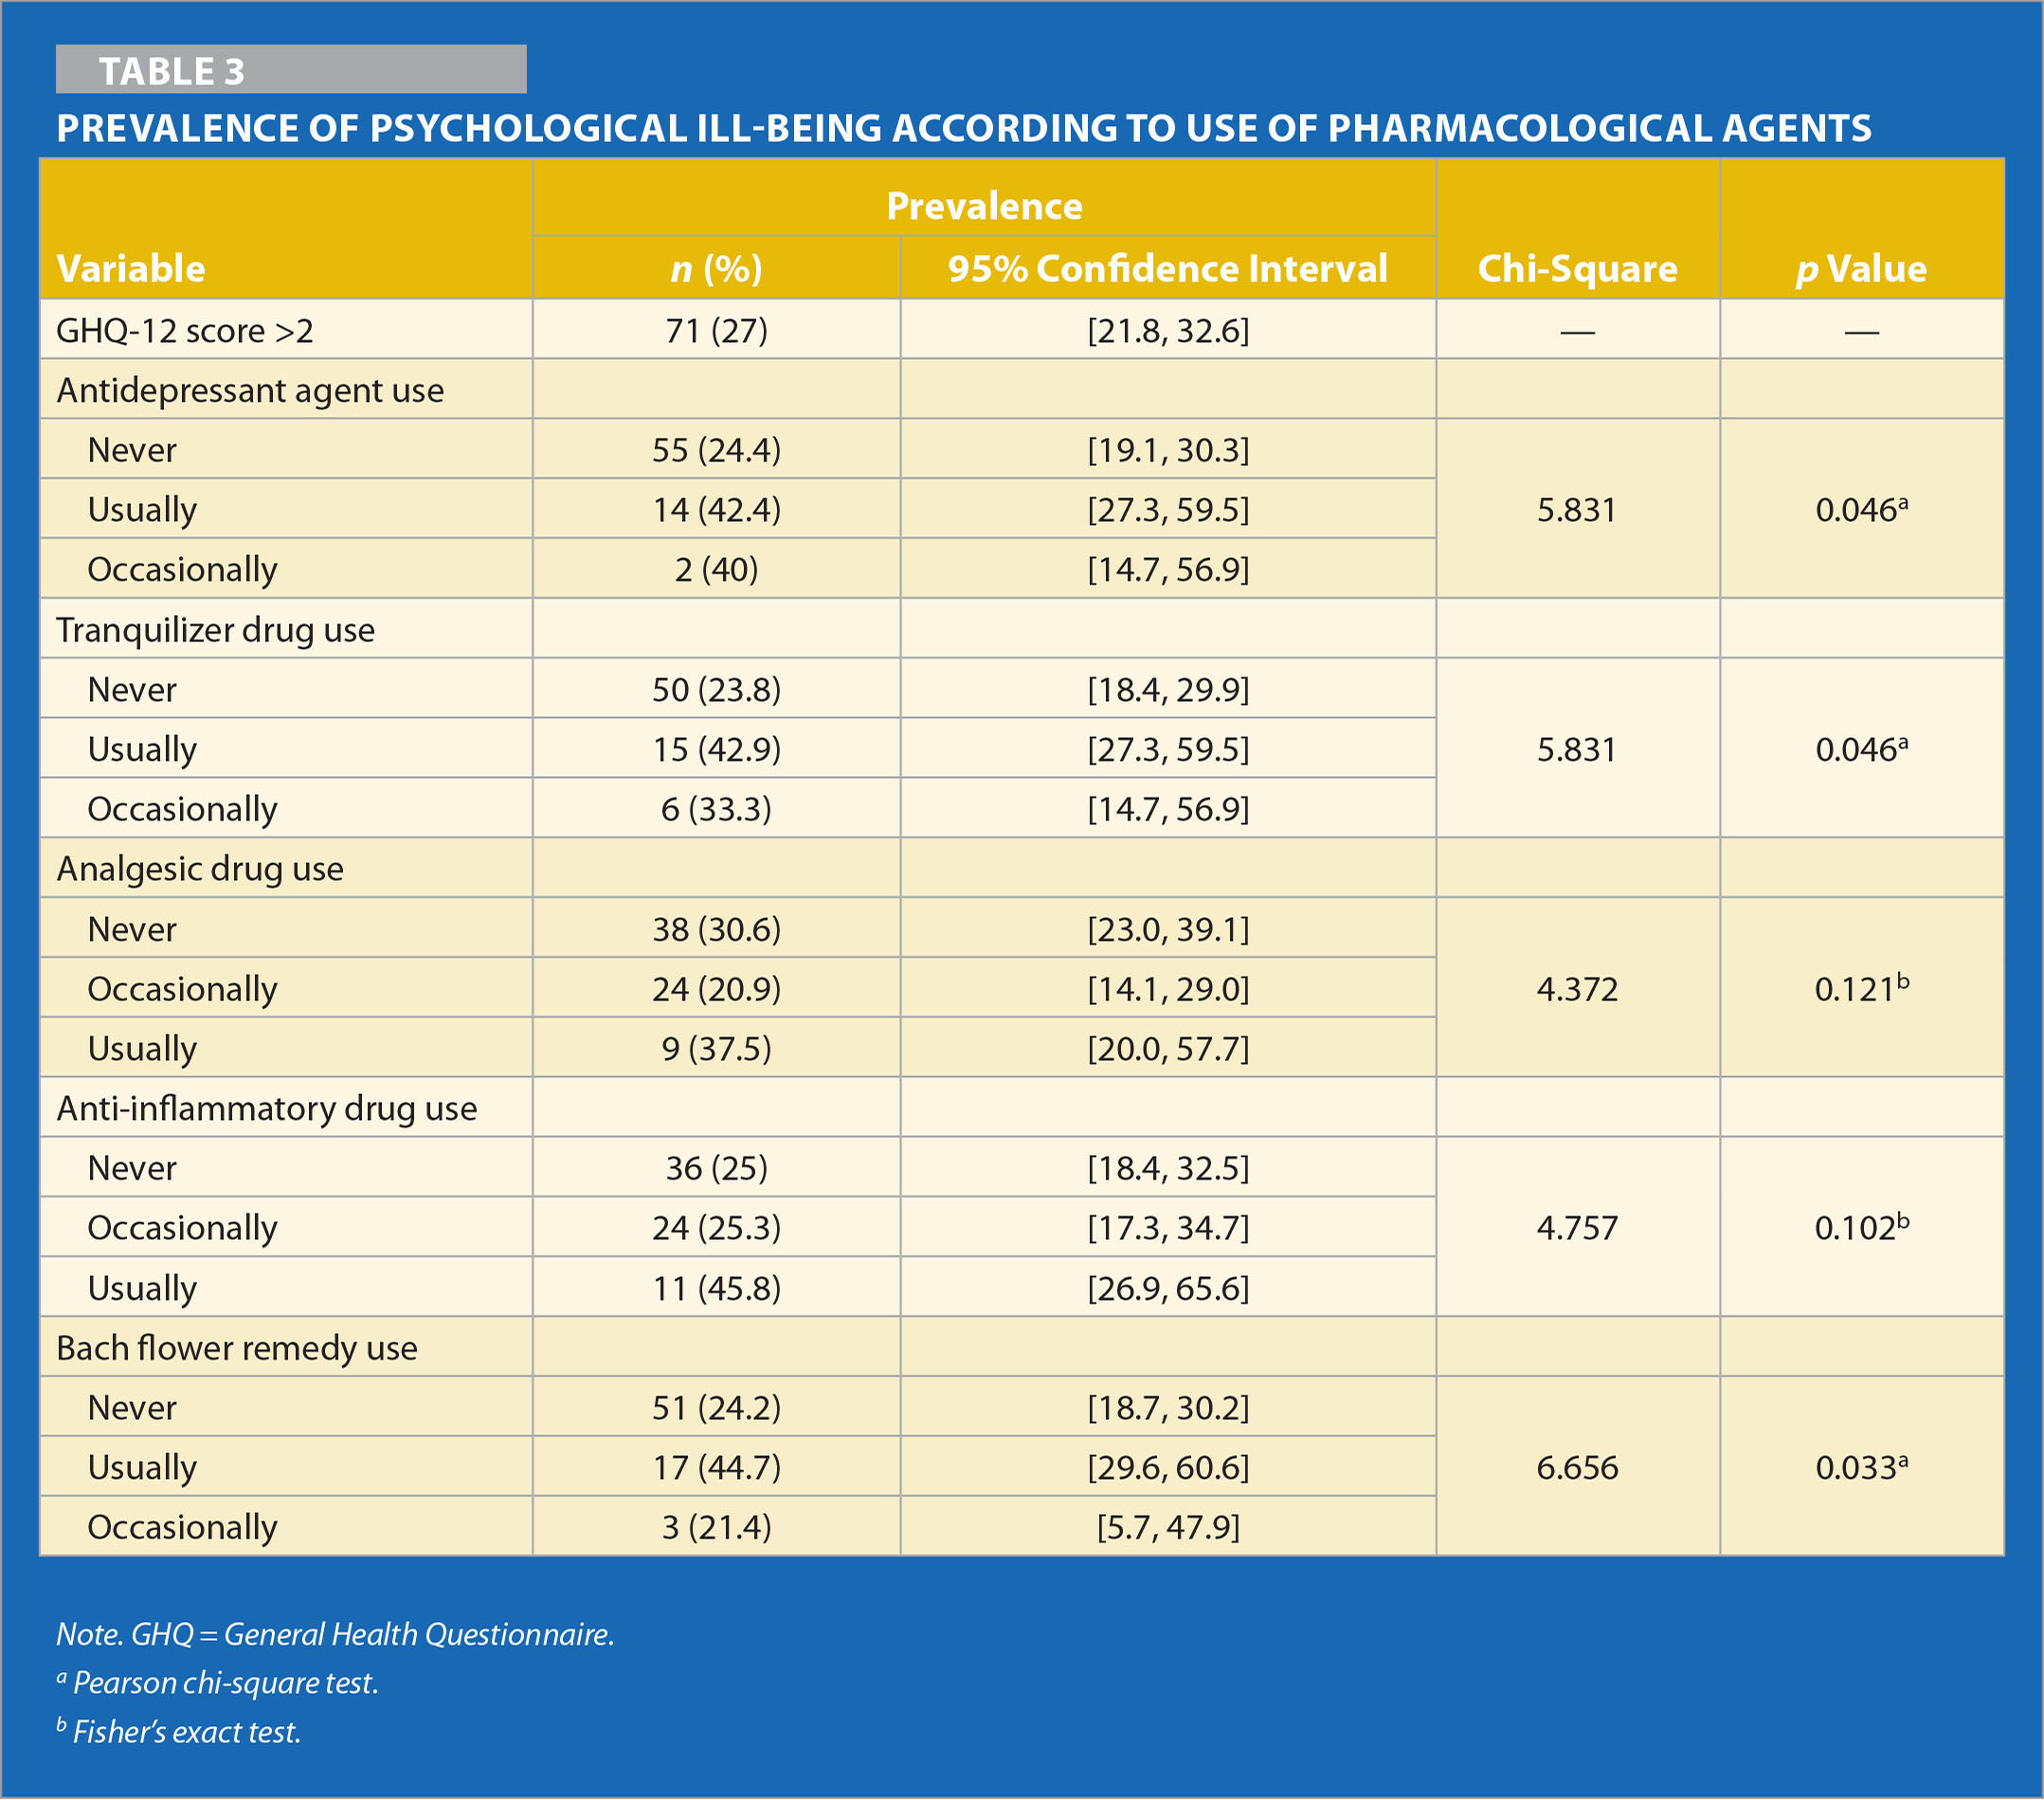 Prevalence of Psychological Ill-Being According to Use of Pharmacological Agents